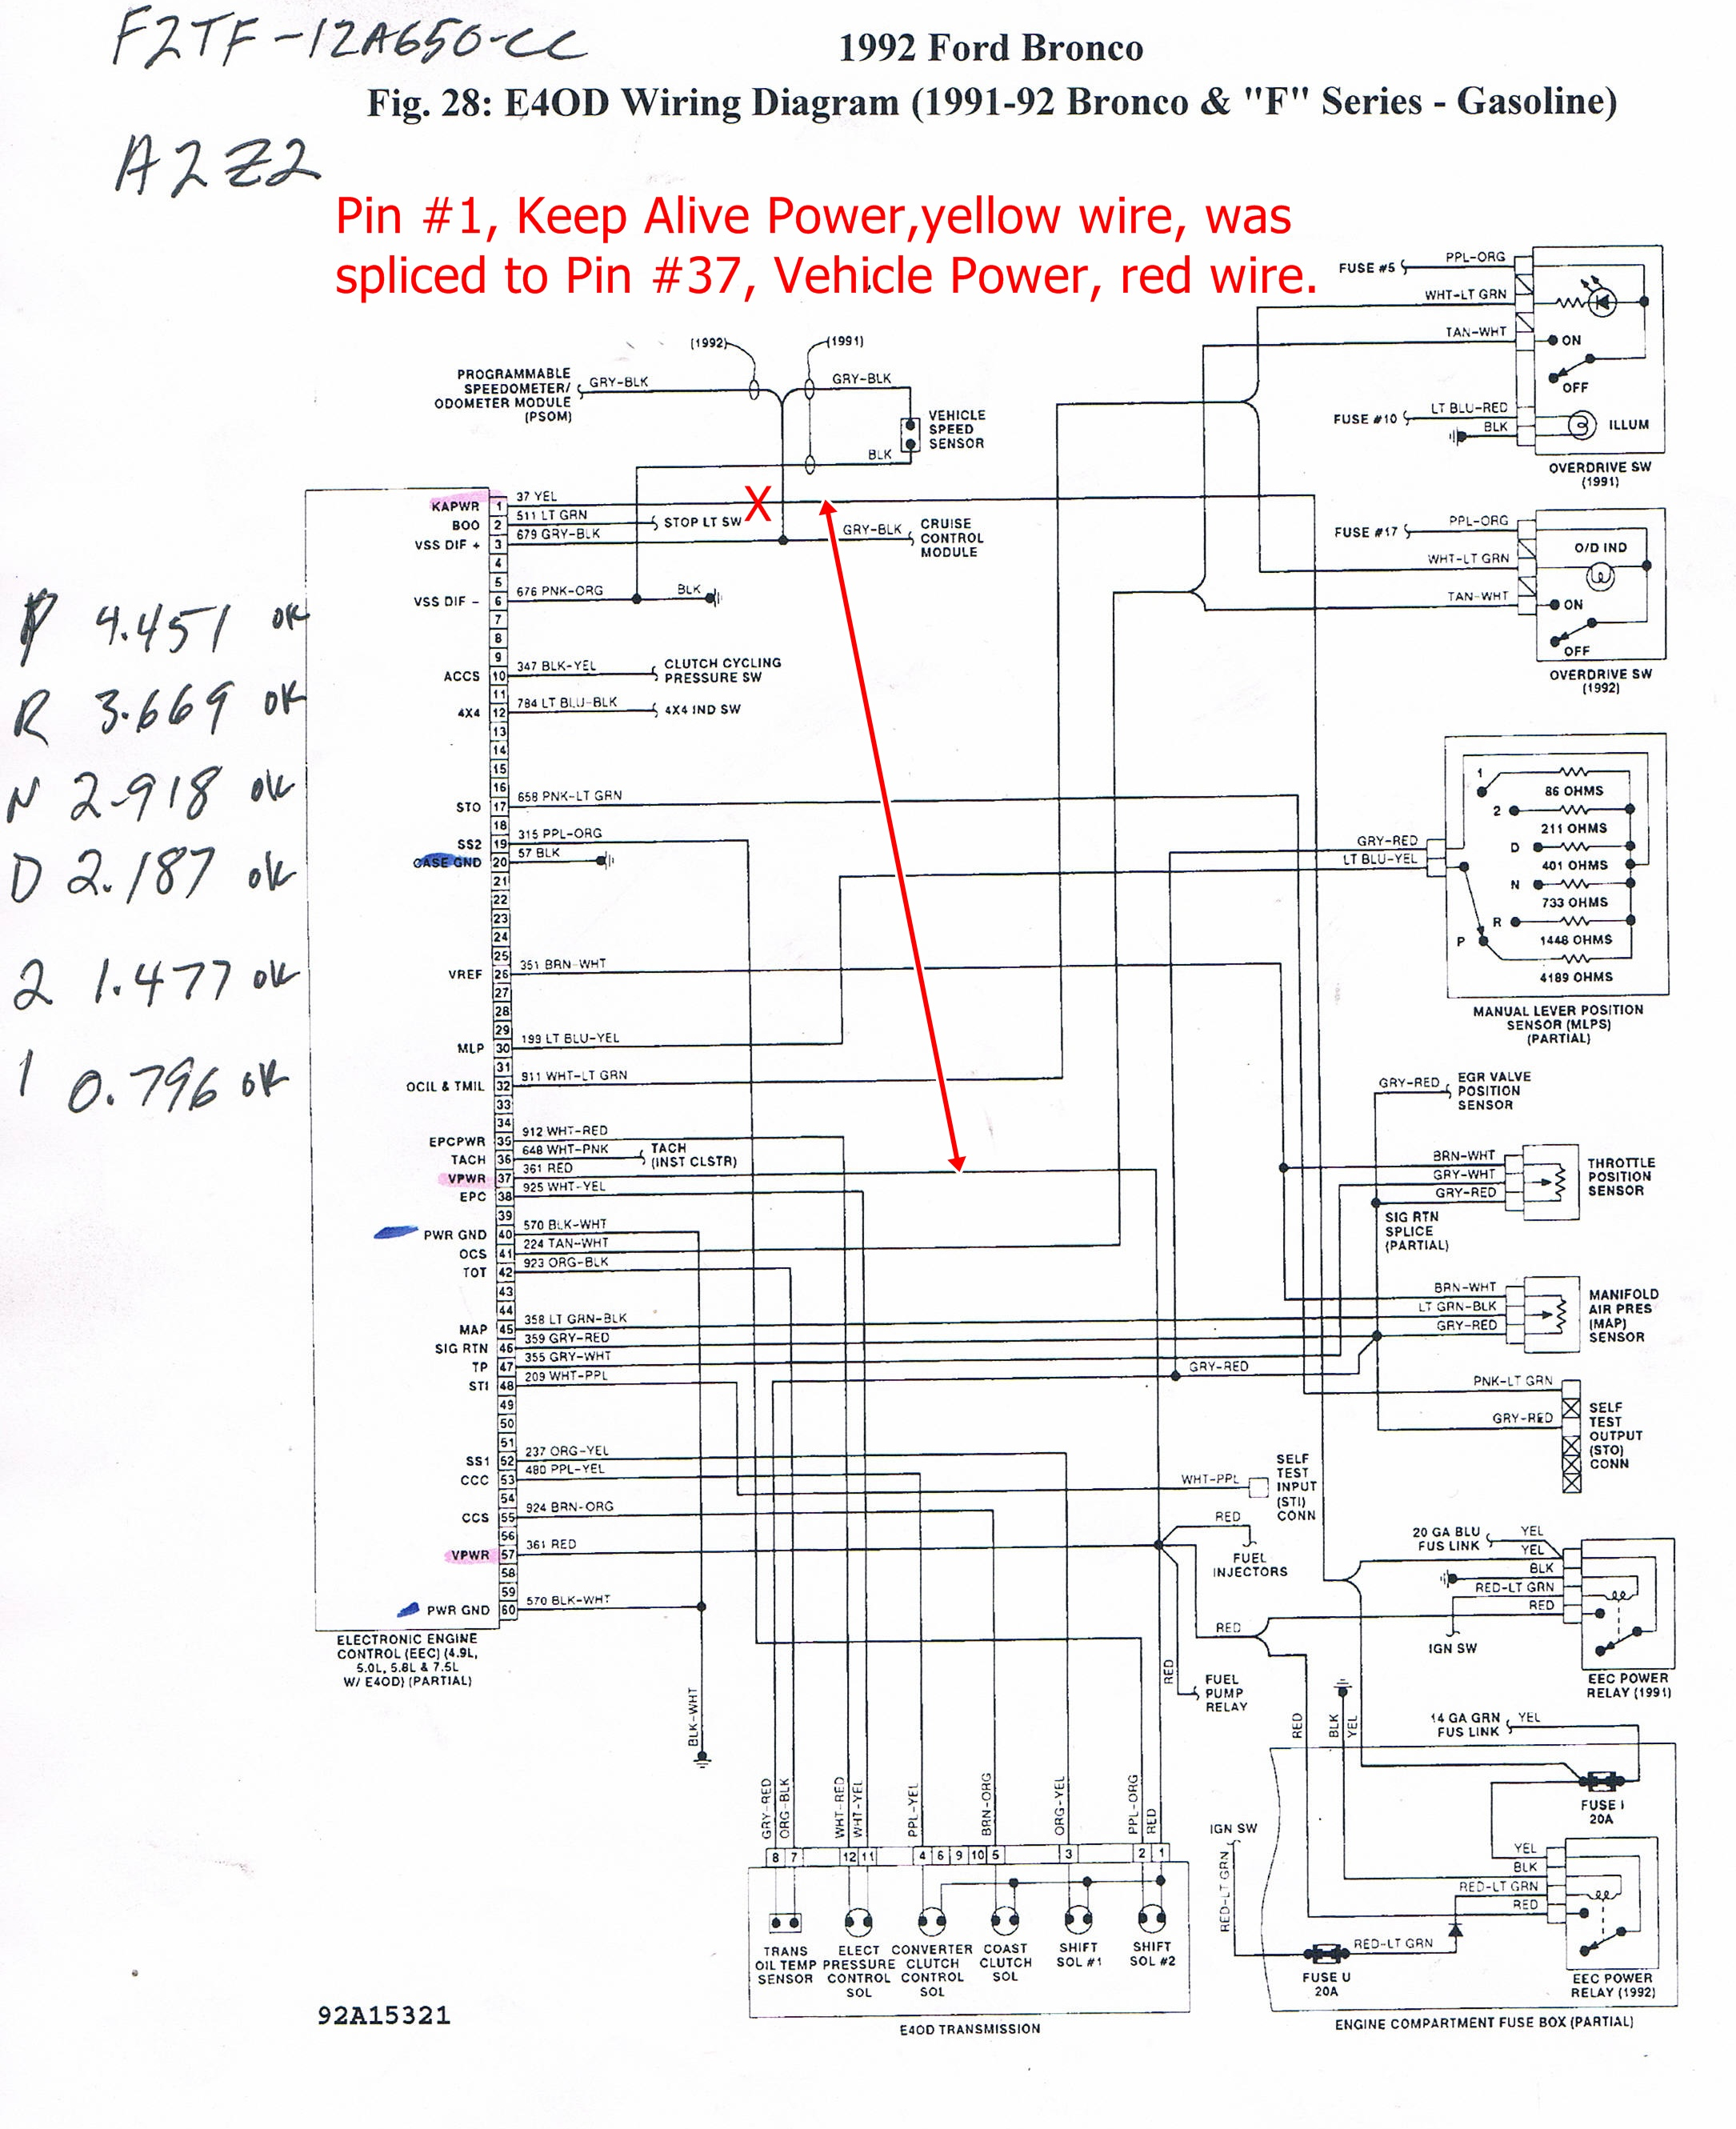 Knock Sensor Wiring Lexus Rx300 Diagram Data Radio Library Antenna